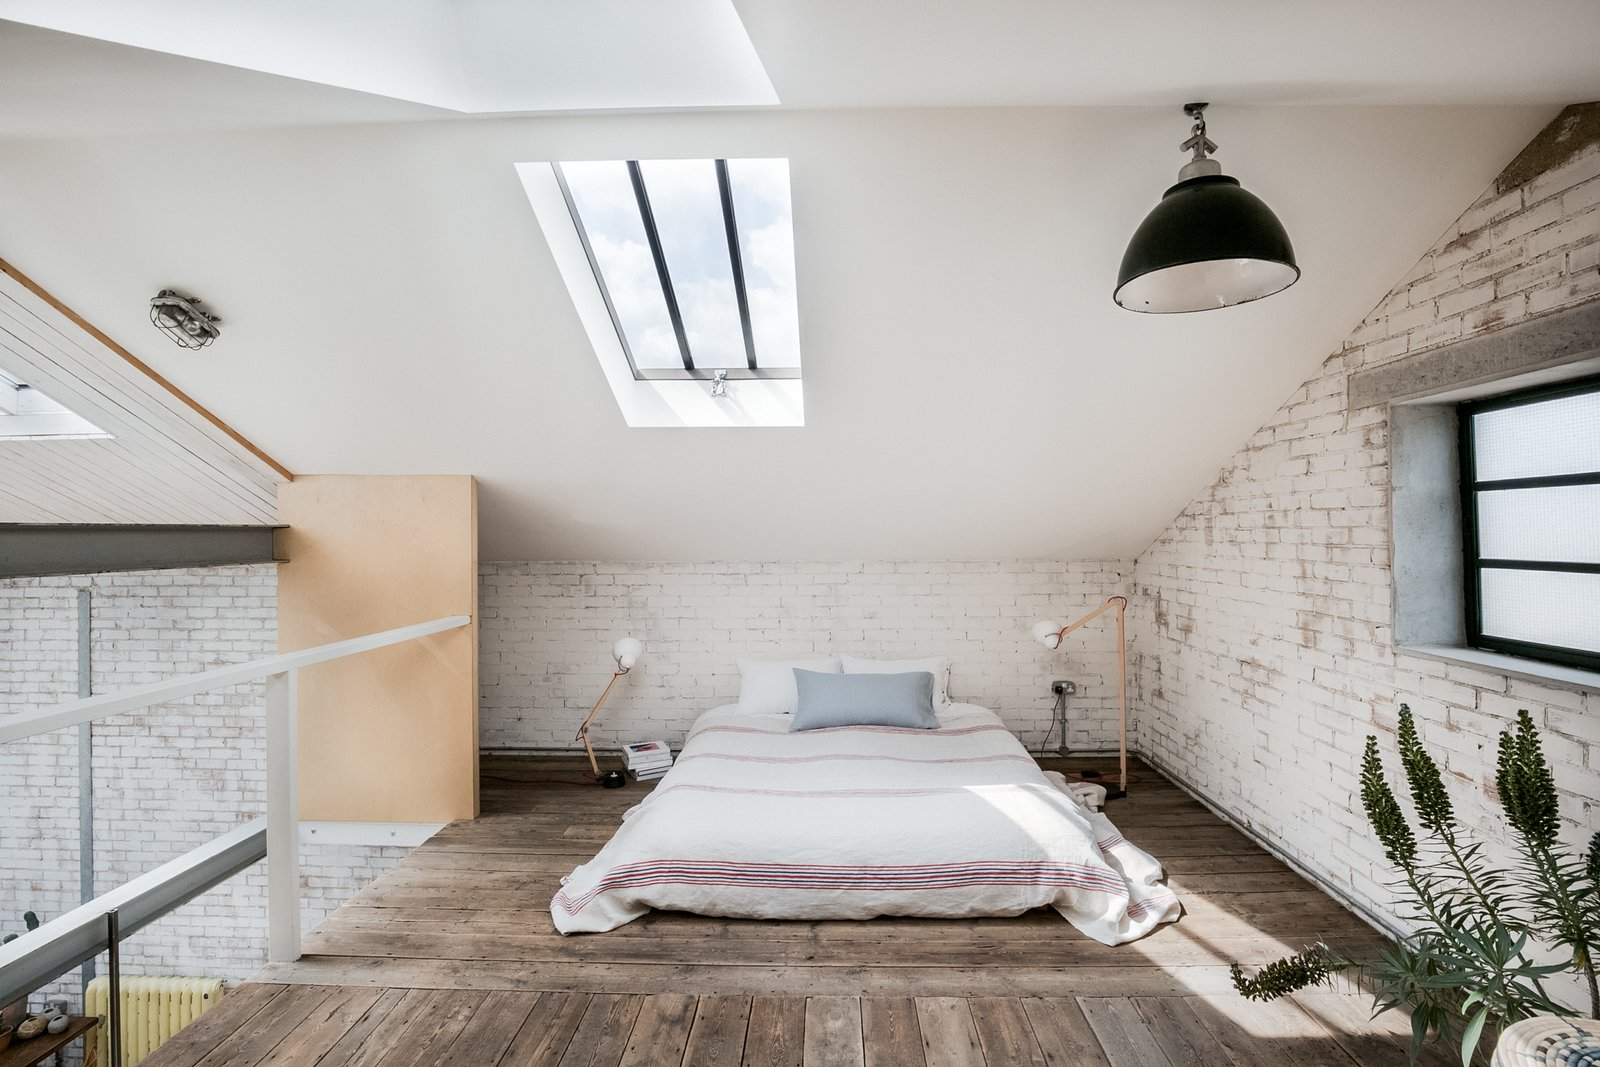 Bedroom, Pendant Lighting, Dark Hardwood Floor, Bed, and Table Lighting The floor-level bed makes best use of the space in the mezzanine-level bedroom. Luxury additions include recessed Crittall windows and two large skylights, which bring light streaming into the space.  Photo 3 of 11 in Snap Up This Converted  Warehouse in London For $2.1M